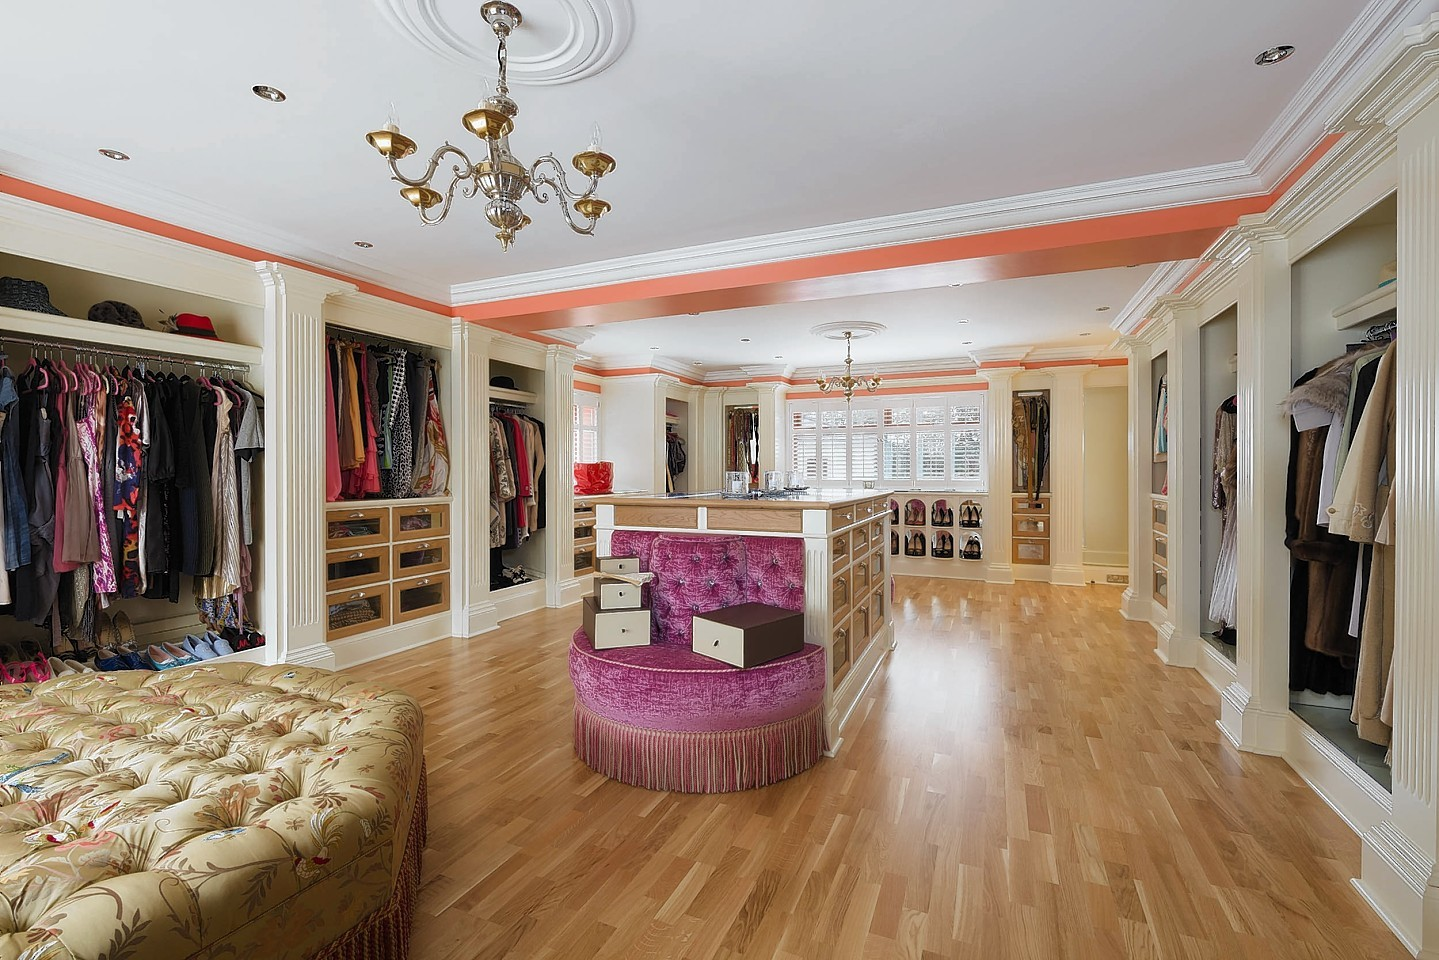 At 1 5million This Is Scotland S Most Expensive Bungalow: At £1.5million, This Is Scotland's Most Expensive Bungalow